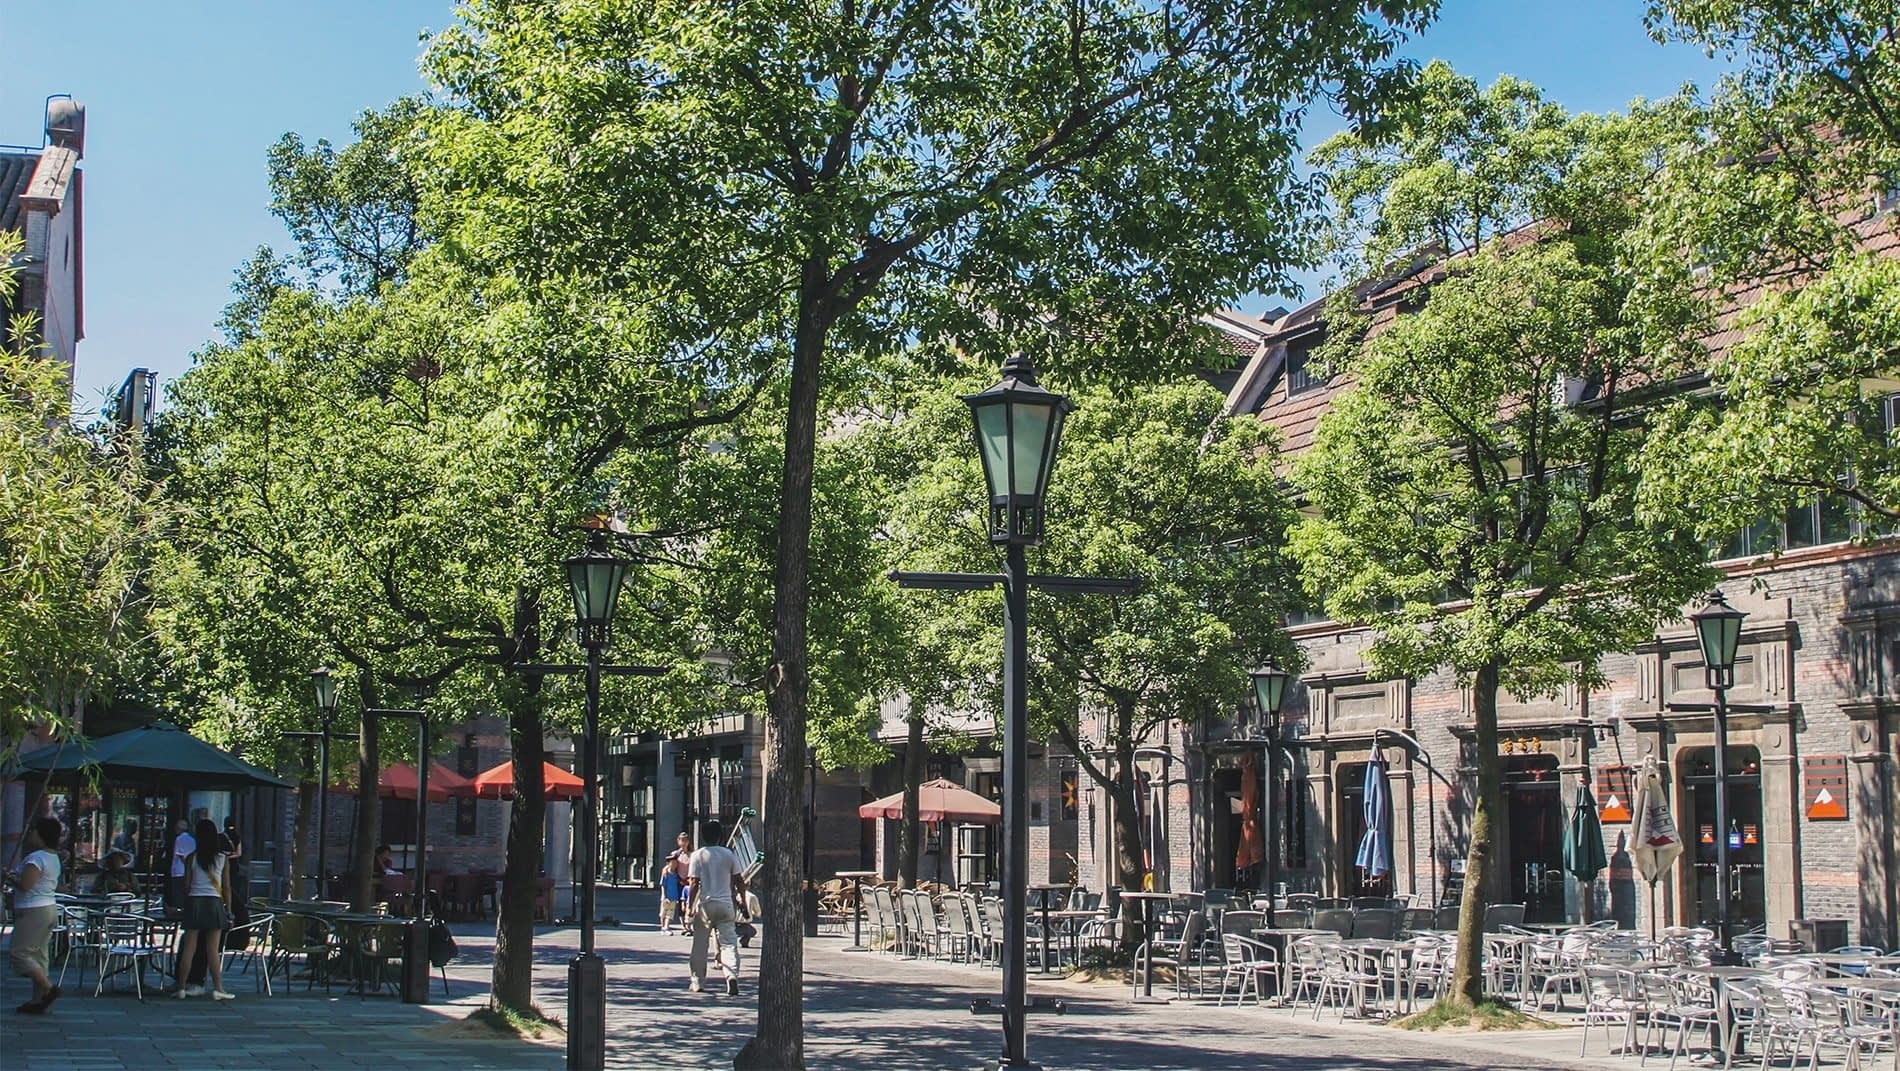 French Concession~A canopy of French poplars, planted either side of its graceful streets, creates plentiful shade under which to amble through the French concession. Its mansions and apartments incorporate Art Deco styles from all over the world.